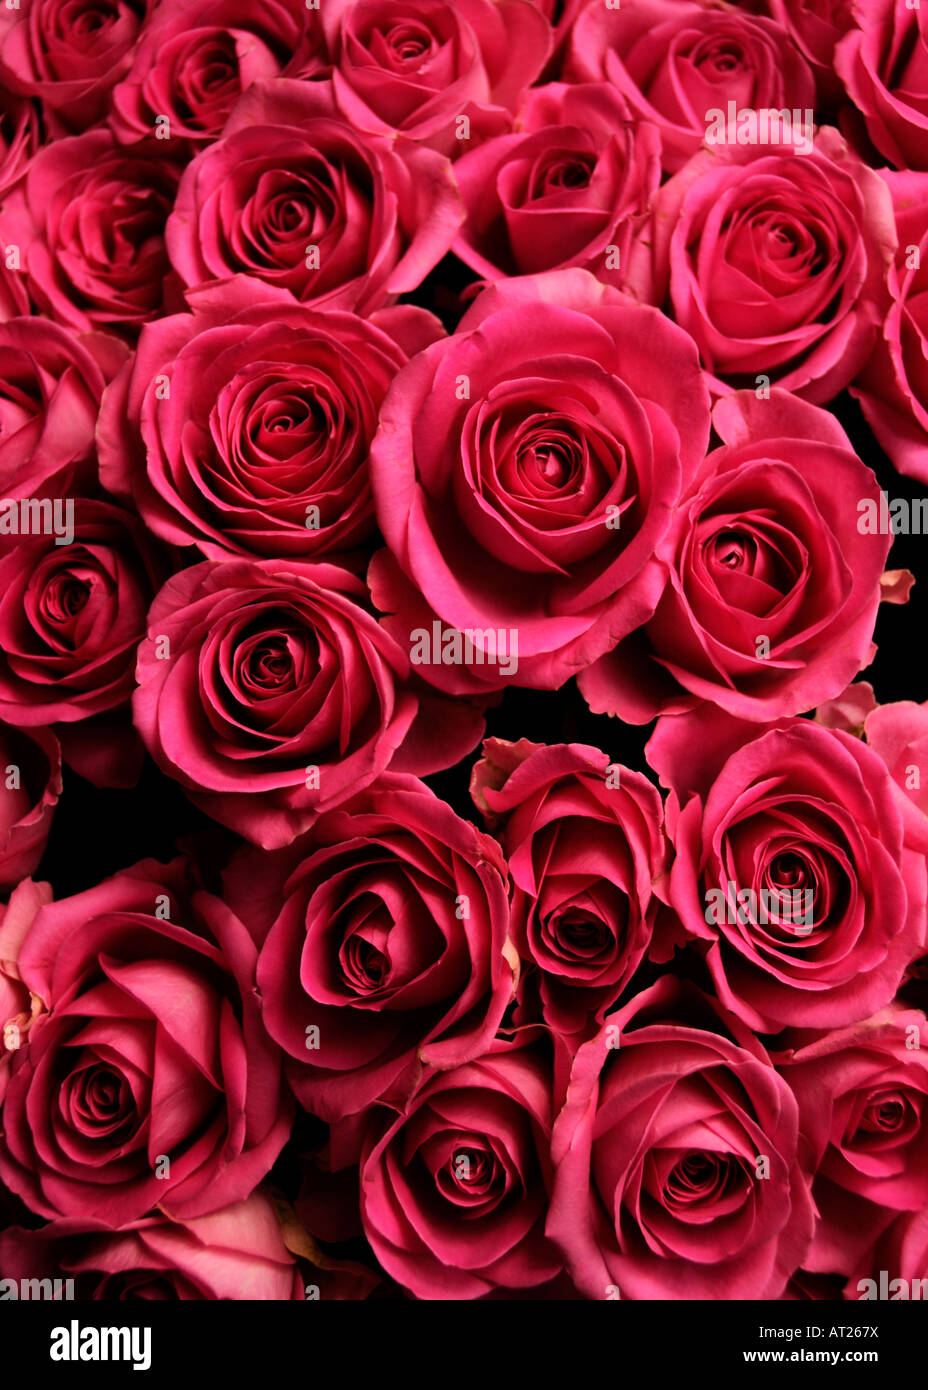 bouquet of red roses - Stock Image